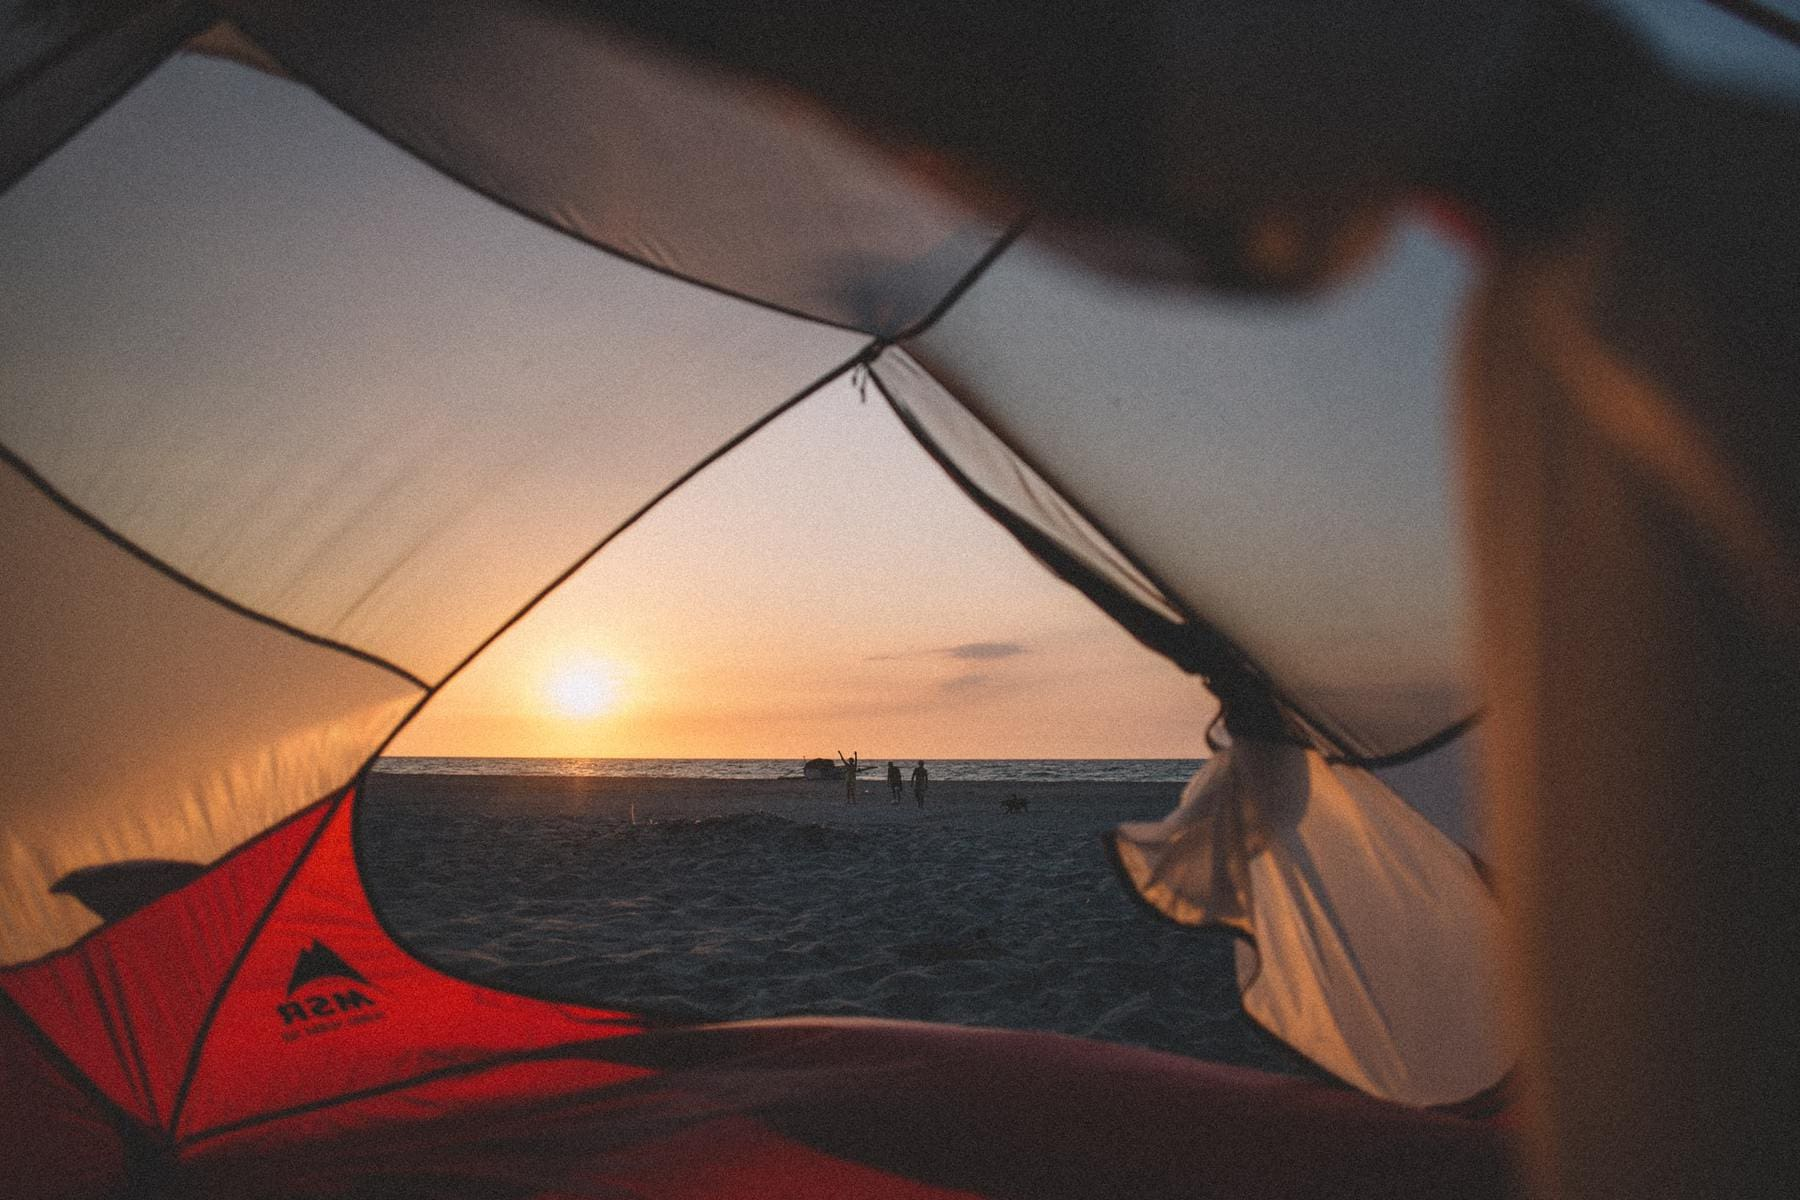 a tent on the beach at sunset